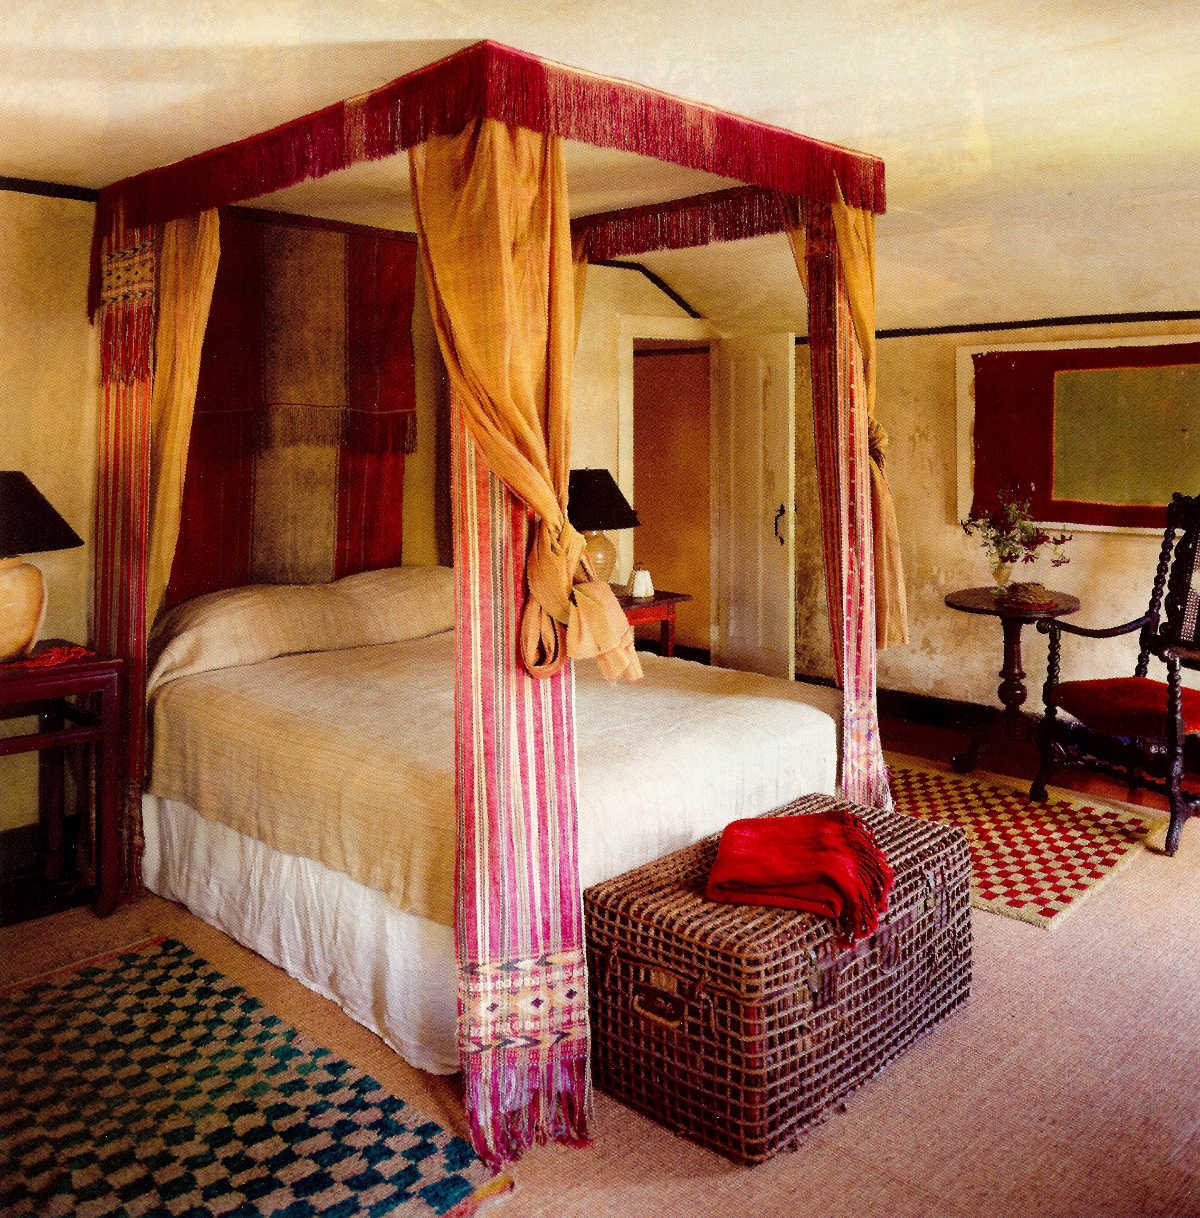 draped canopy beds - Four poster canopy bed draped in antique Asian textiles - Elle Decor & Draped Canopy Beds - Atticmag